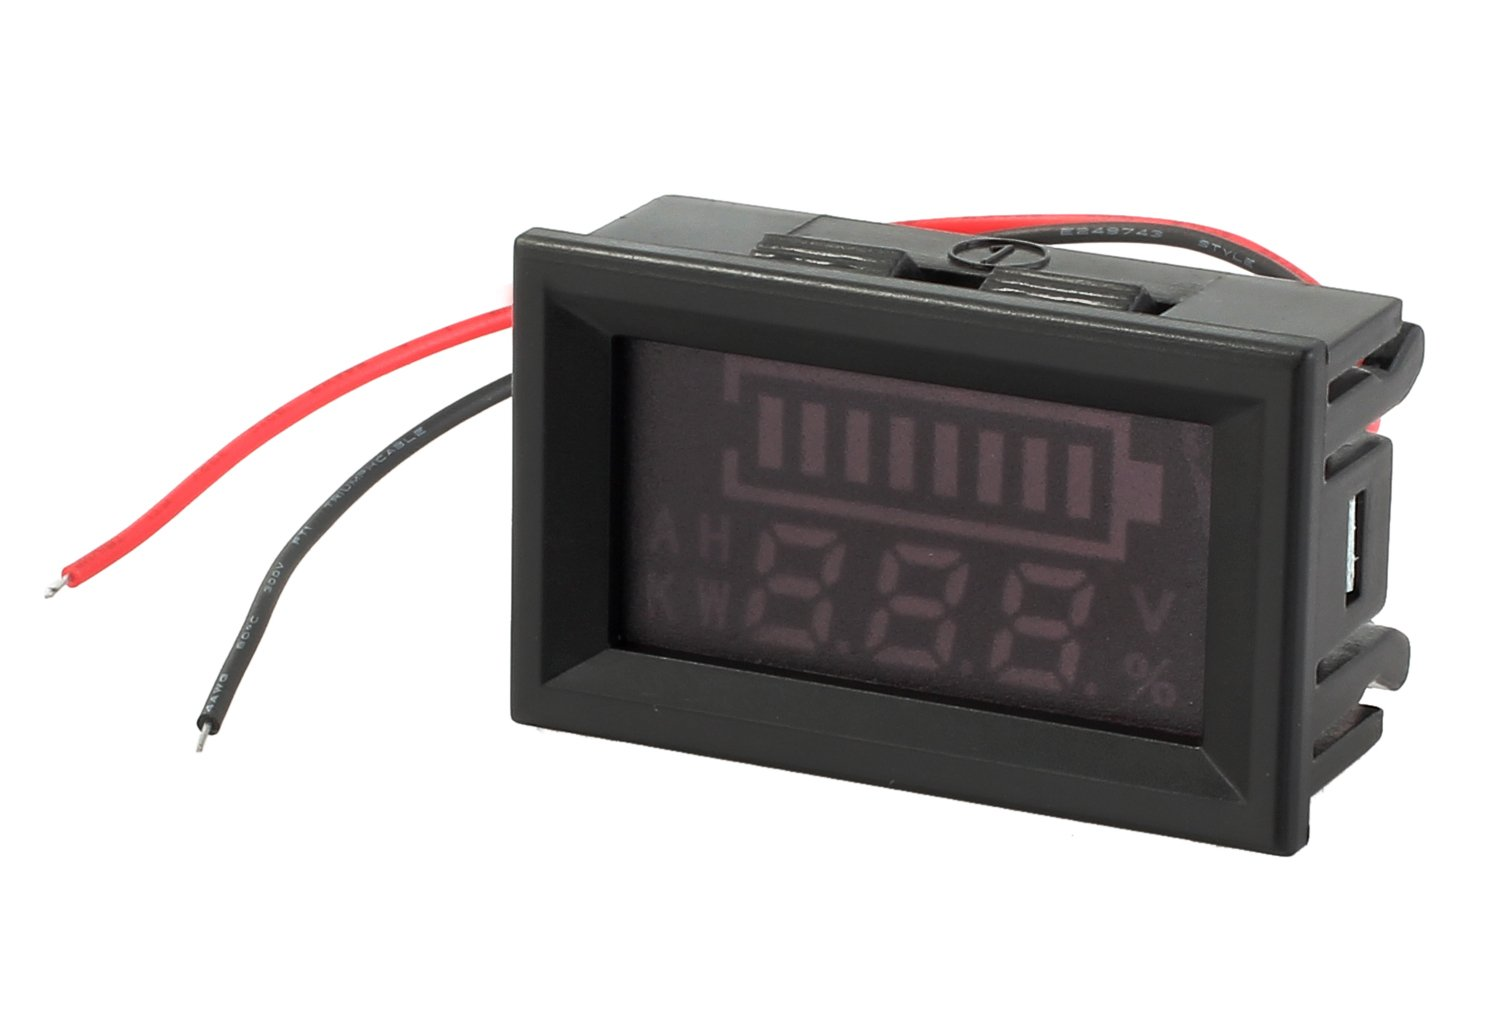 Tanice 12/24V Acid Lead Lithium Battery Indicator Capacity Intuitive Voltmeter Digital LED Tester Monitor Checker